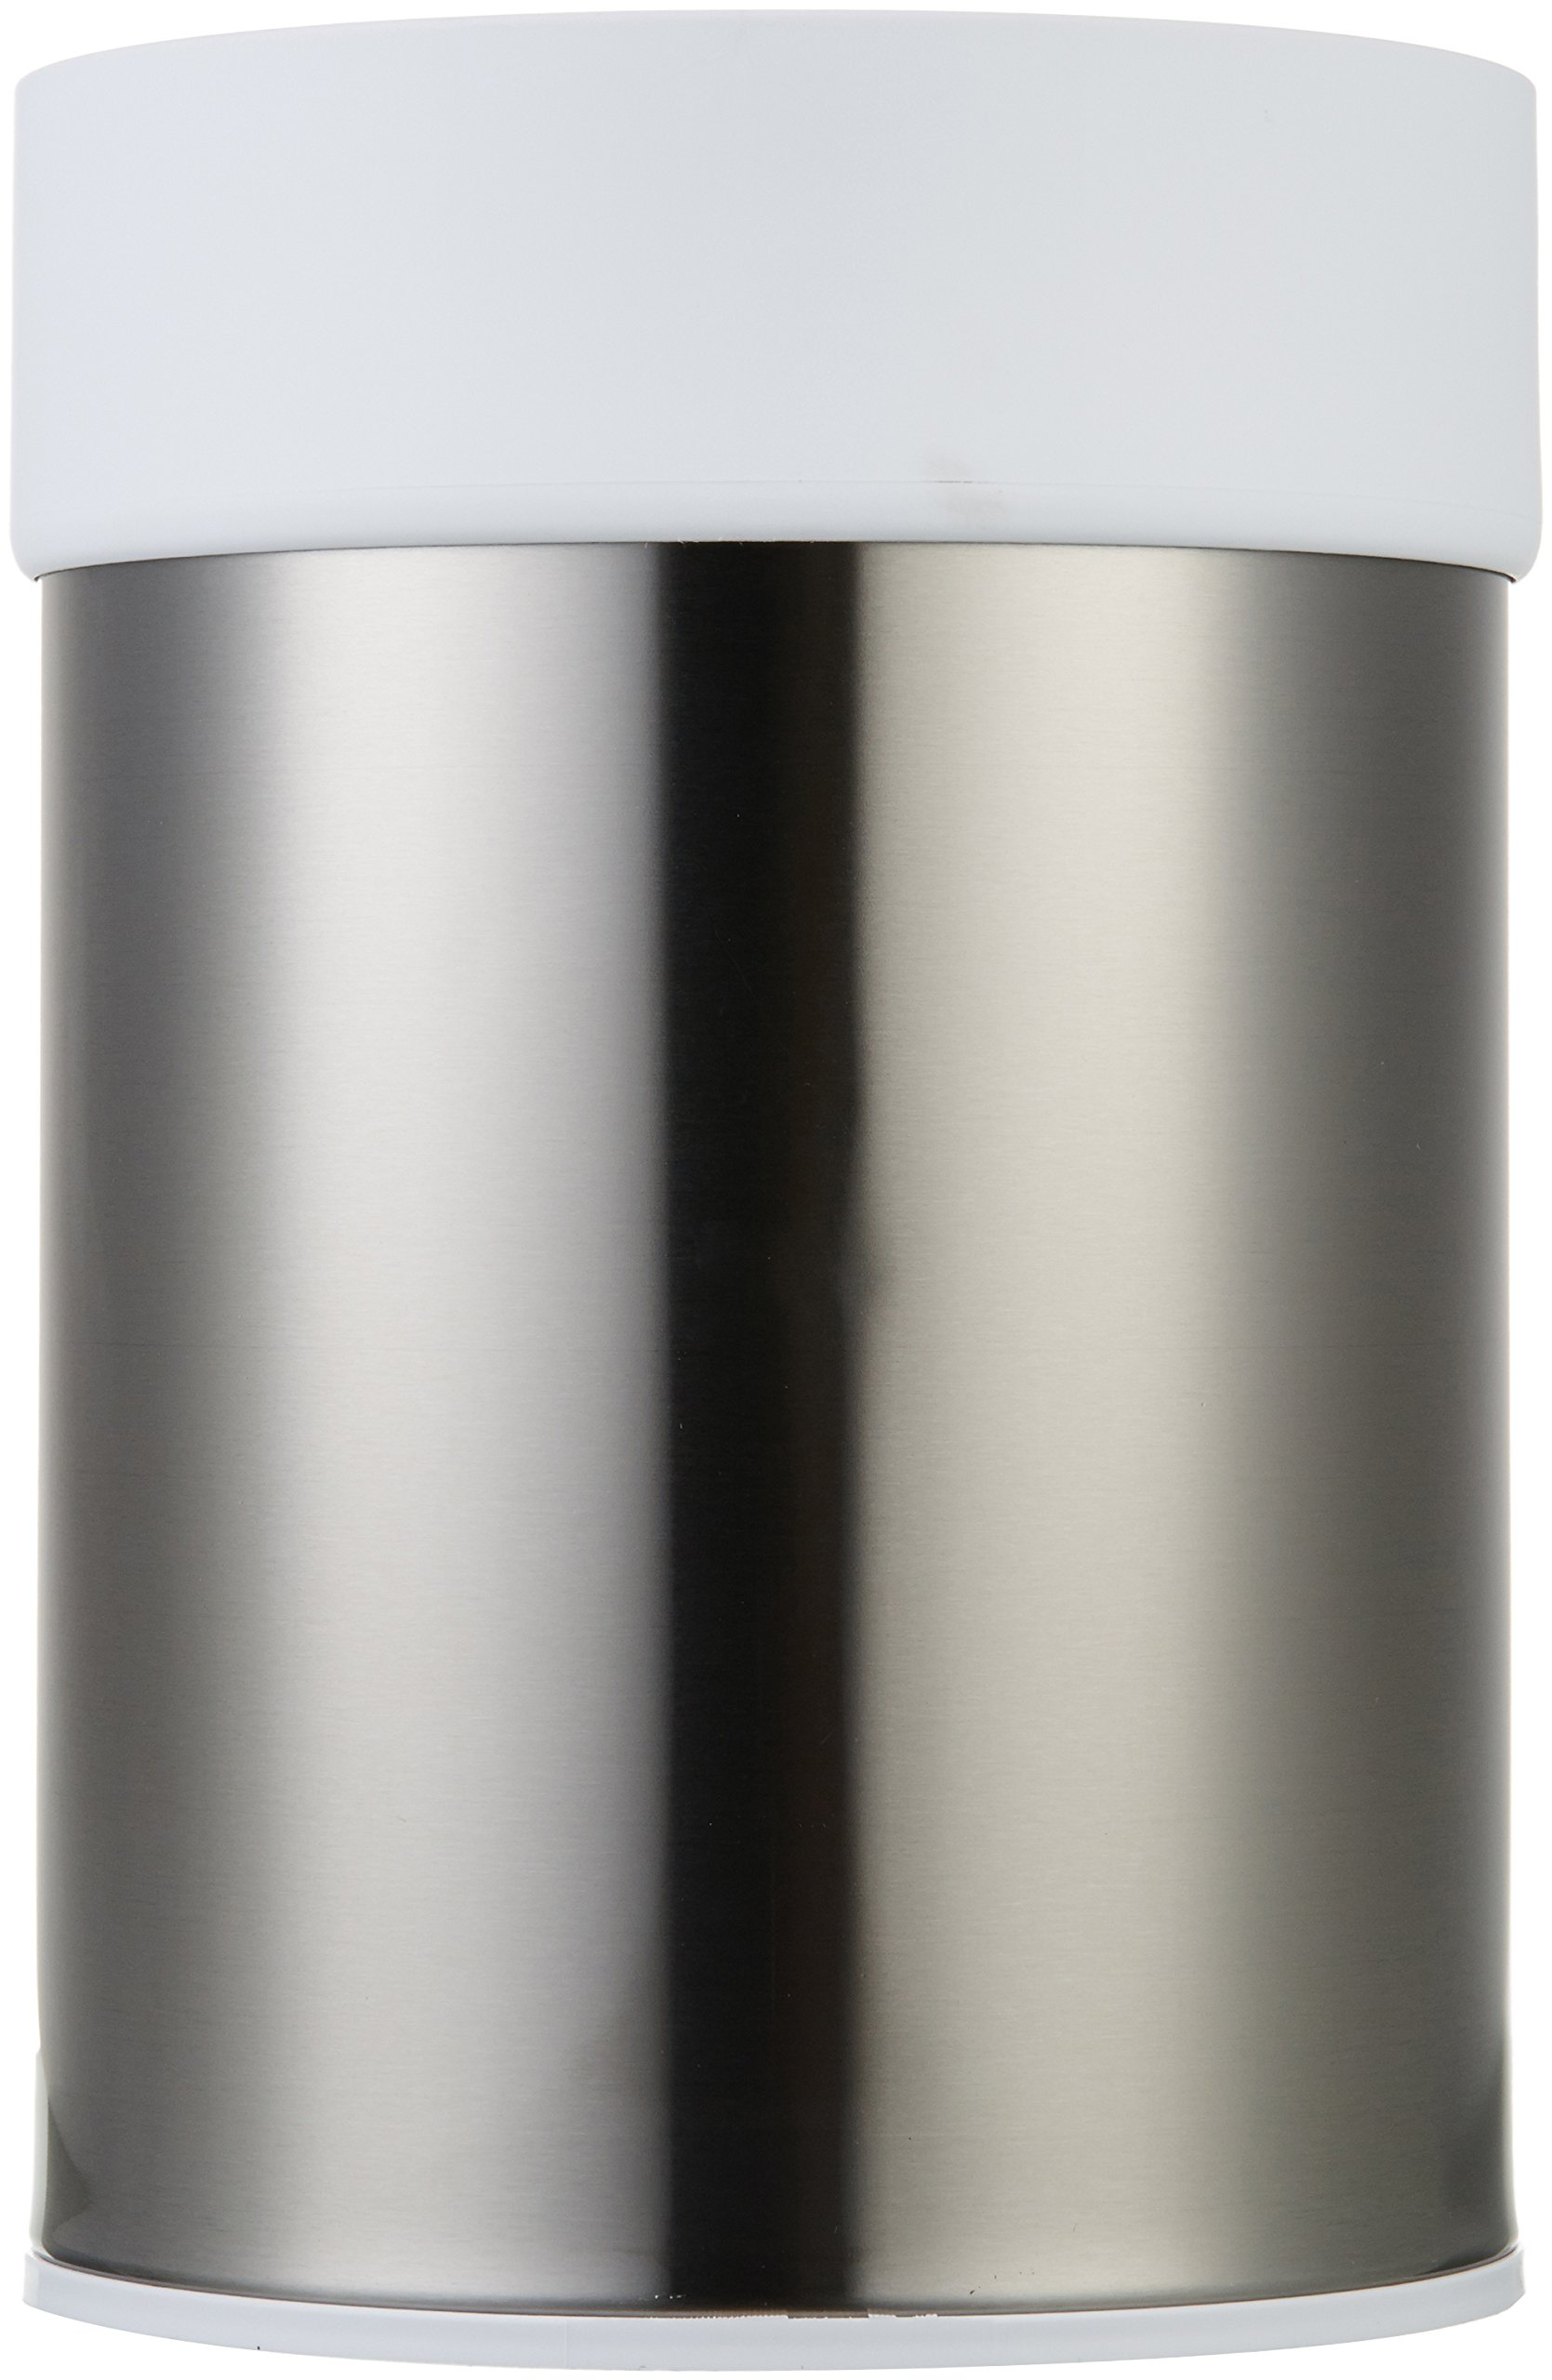 AmazonBasics Stainless Steel Trash Waste Can with Lid, White